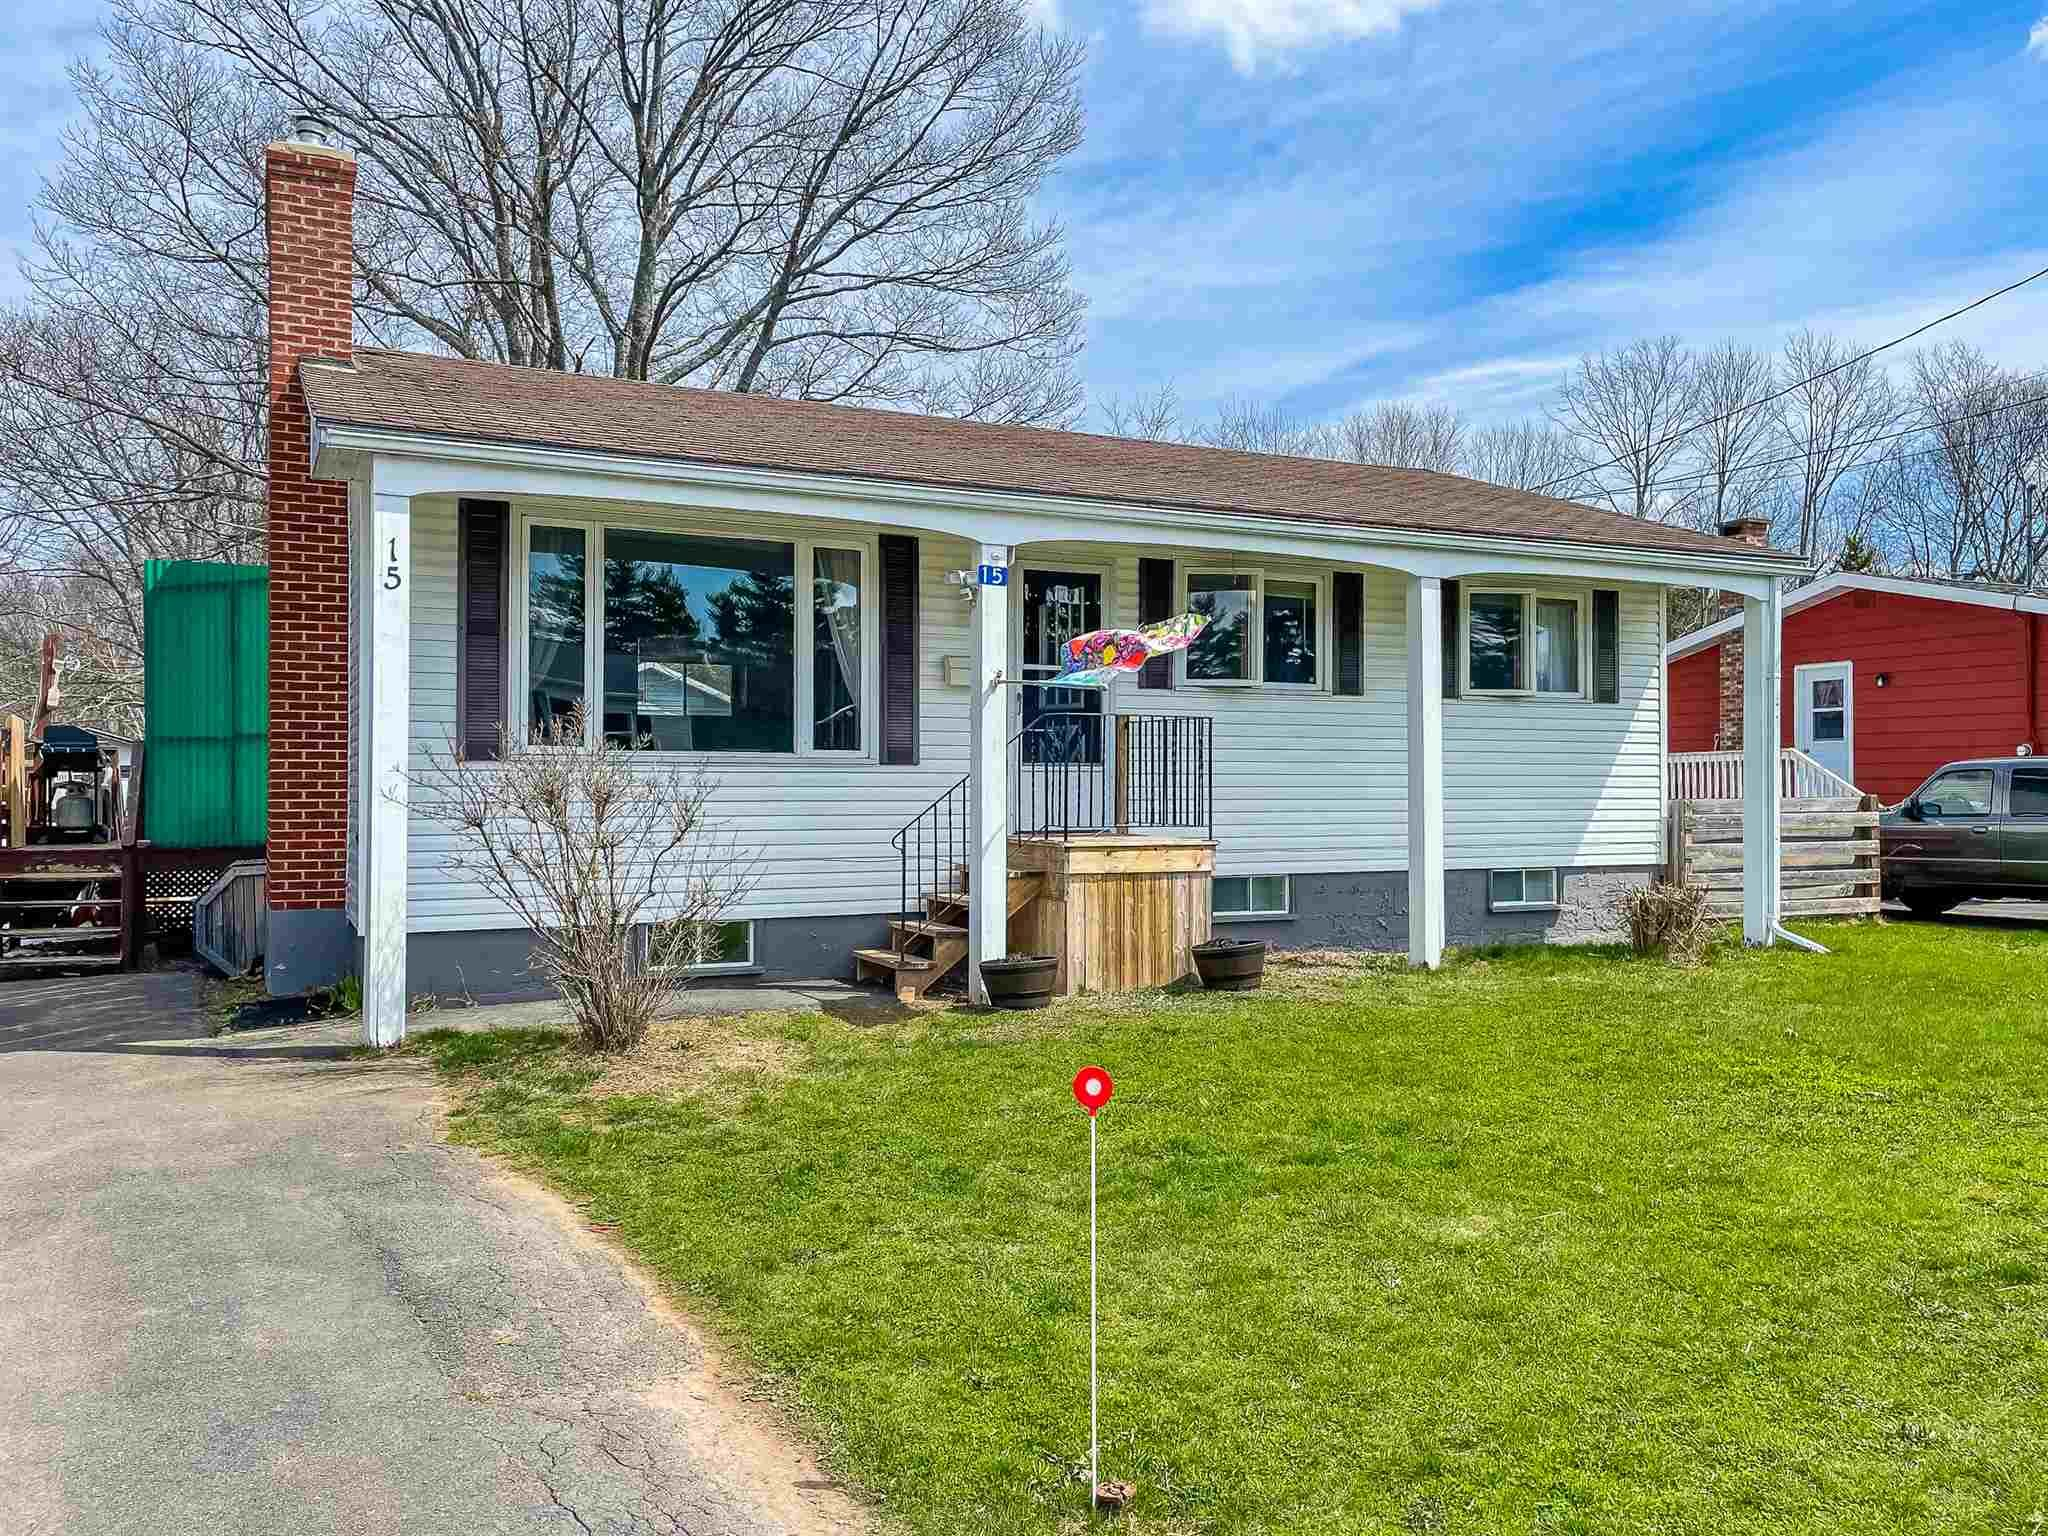 Main Photo: 15 Colonial Crescent in New Minas: 404-Kings County Residential for sale (Annapolis Valley)  : MLS®# 202109517